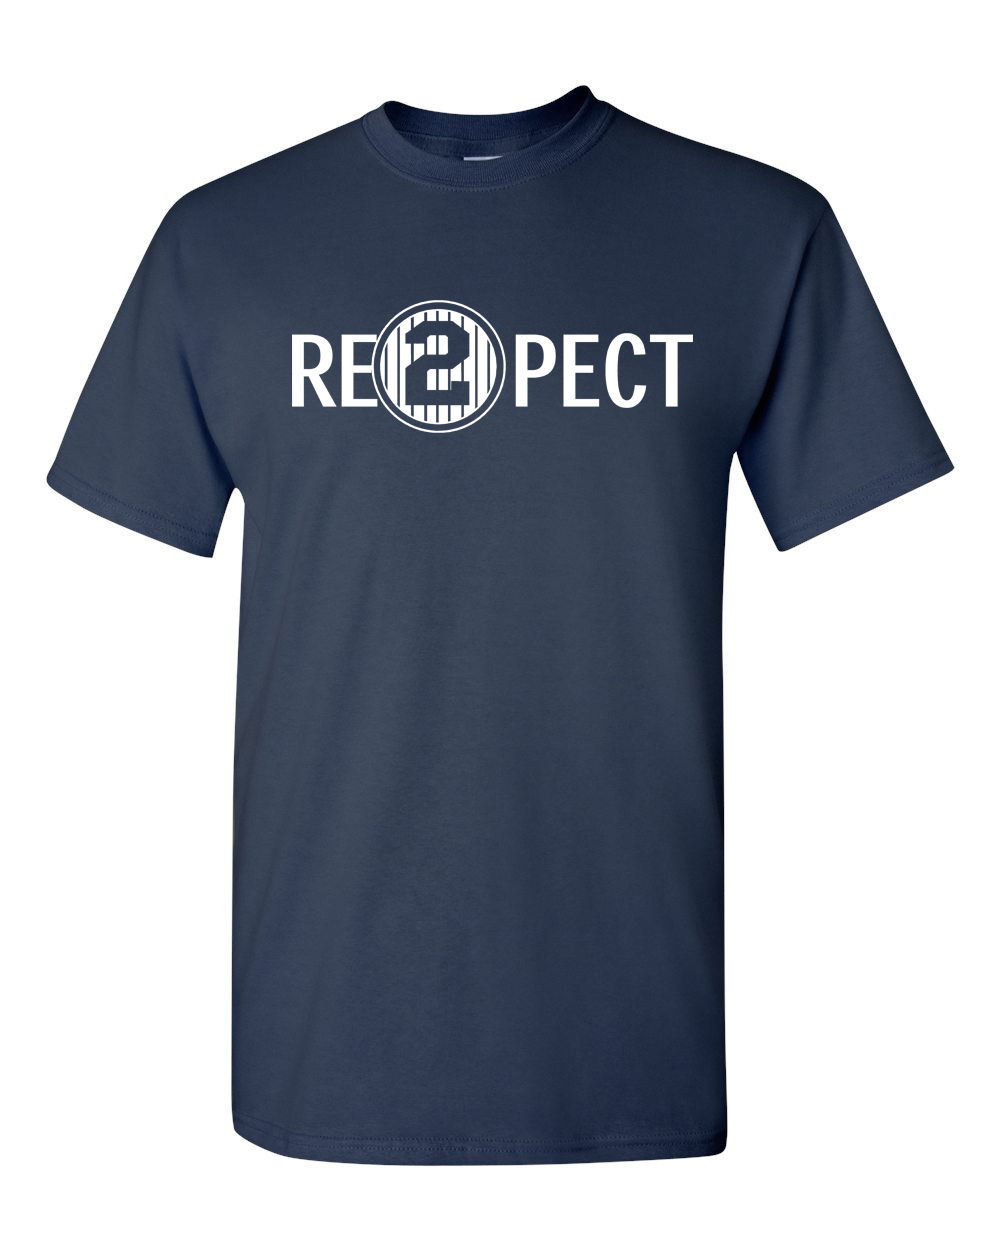 Quality Print New Summer Style Cotton Respect 2 Re2Pect Derek Jeter Captain Ny Yankees MenS Tee Shirt 1173 ...